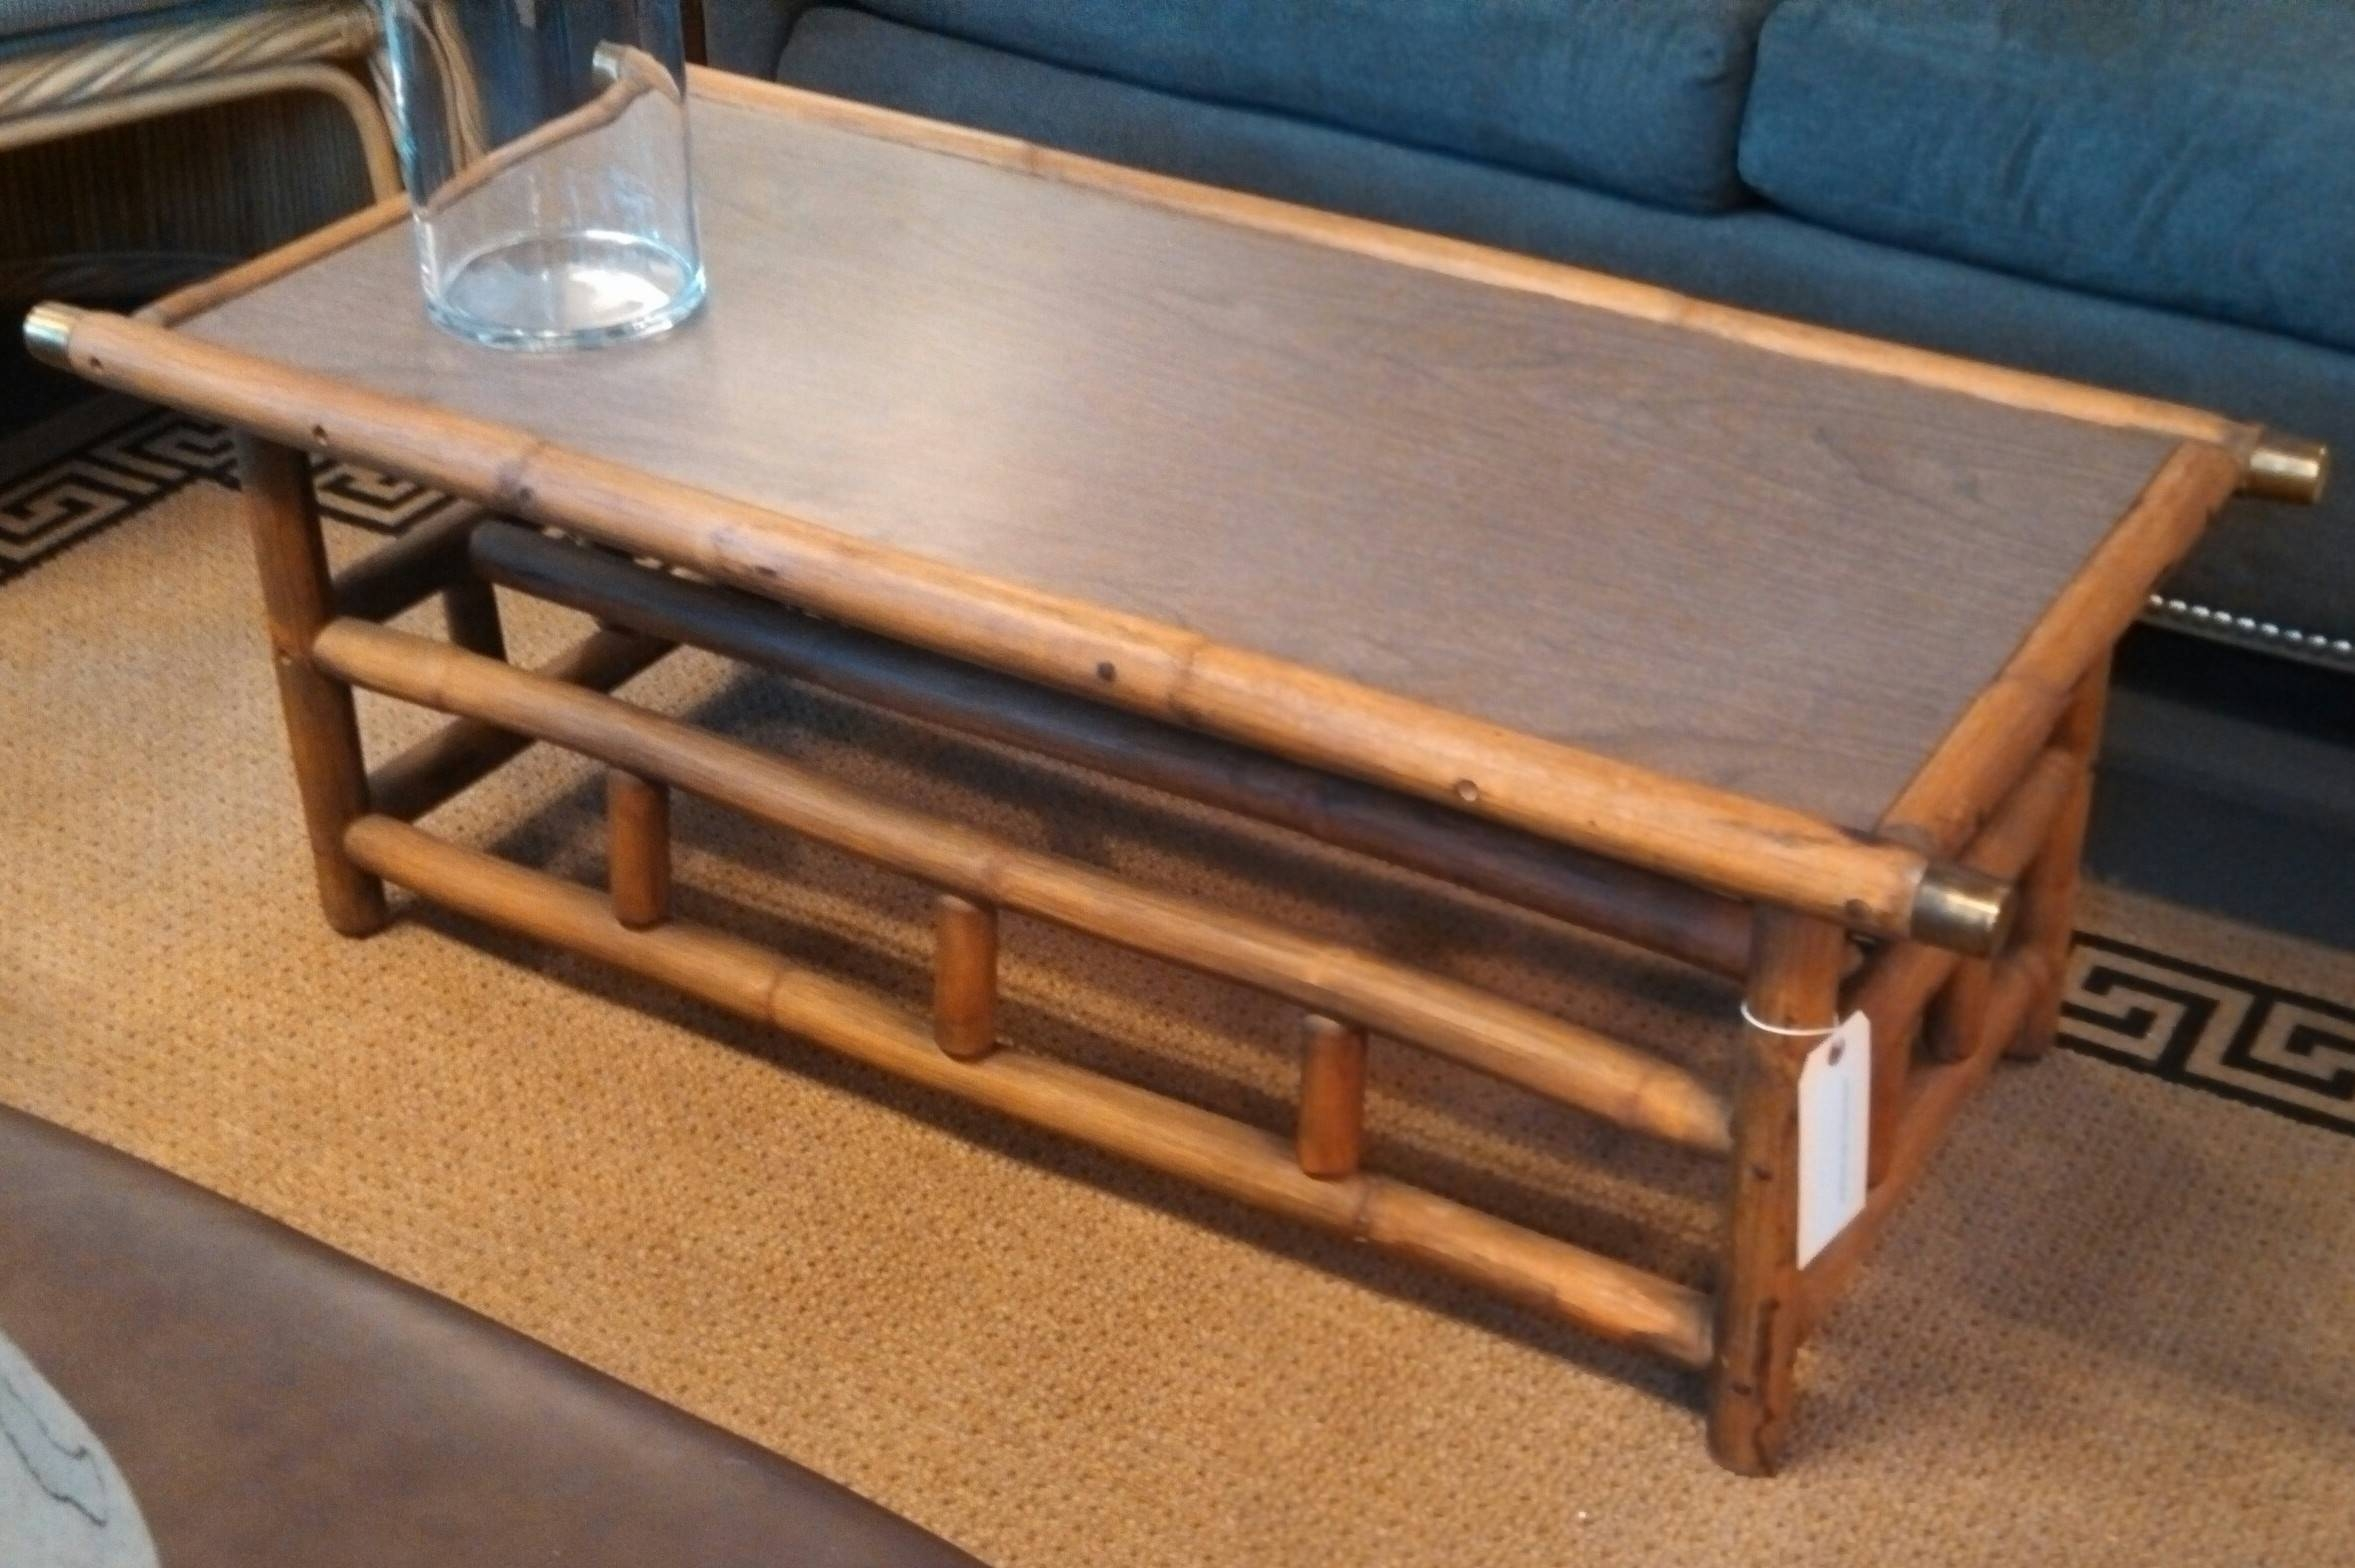 Bamboo Coffee Table | Interior Decor Ideas intended for Gold Bamboo Coffee Tables (Image 8 of 30)